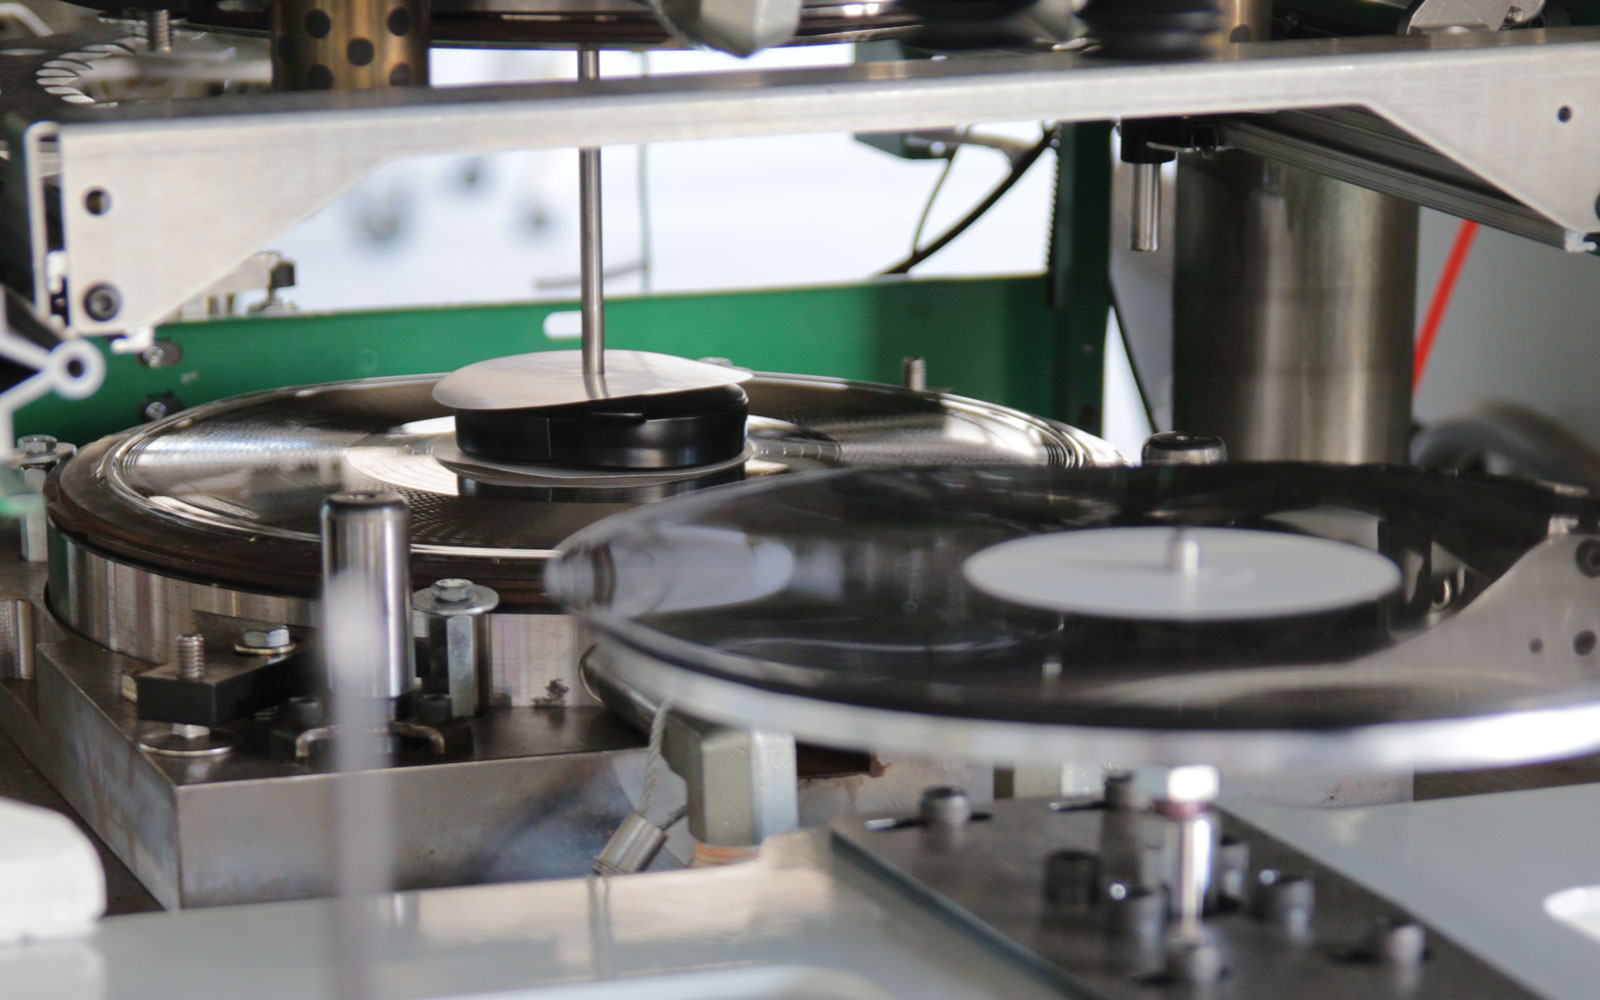 Vinyl Record Production Gets A Much Needed Tech Upgrade